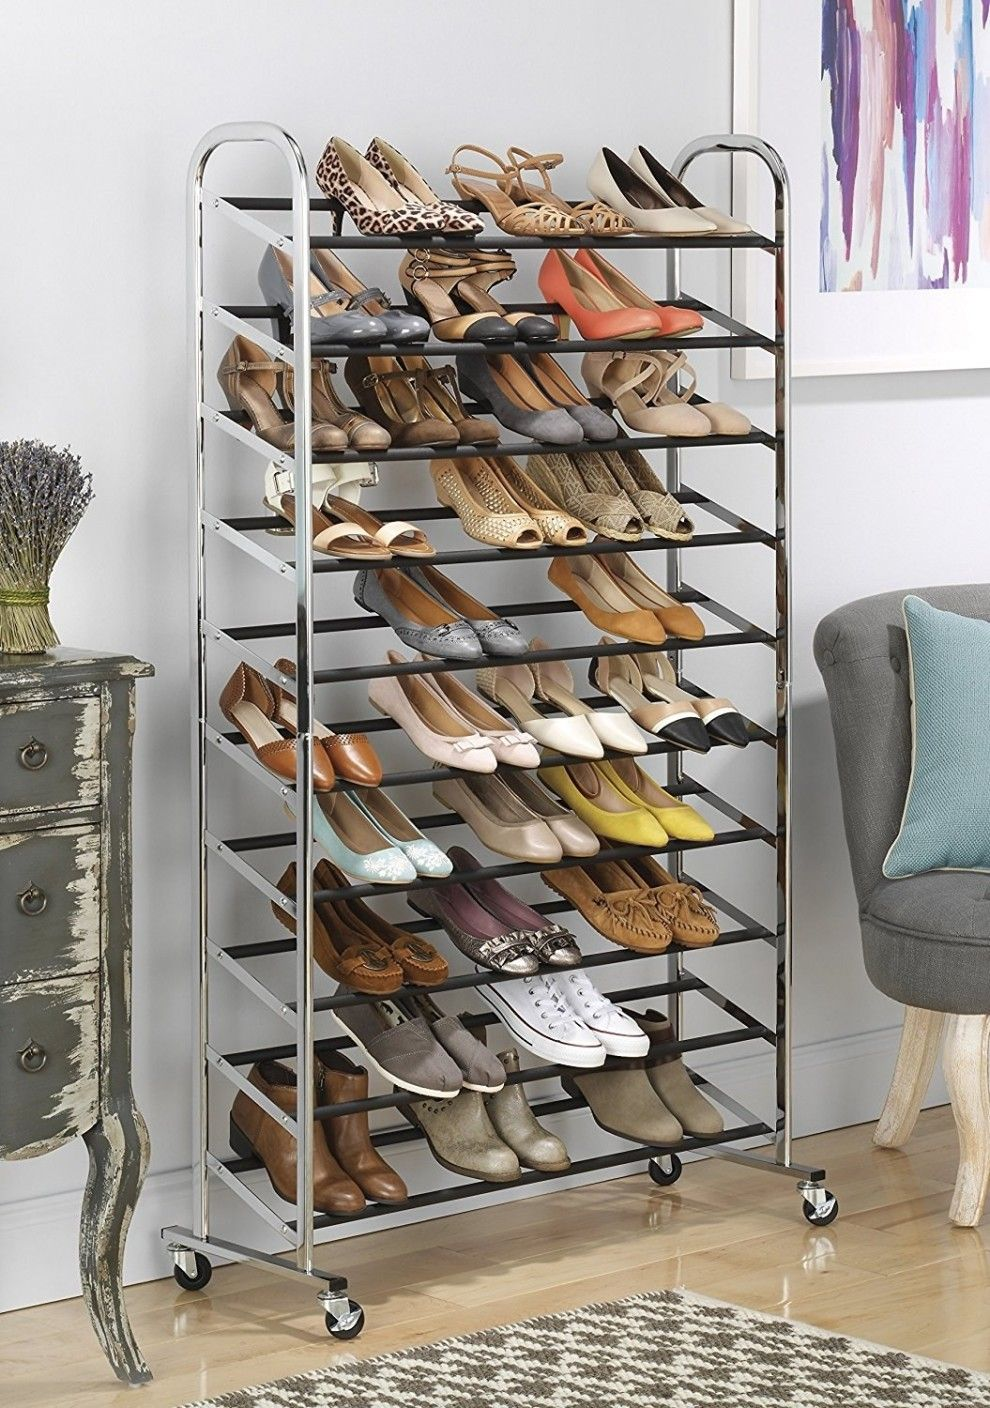 23 Amazing Products With Over 1 000 Reviews On Amazon Closet Shoe Storage 50 Pair Shoe Rack Shoe Rack